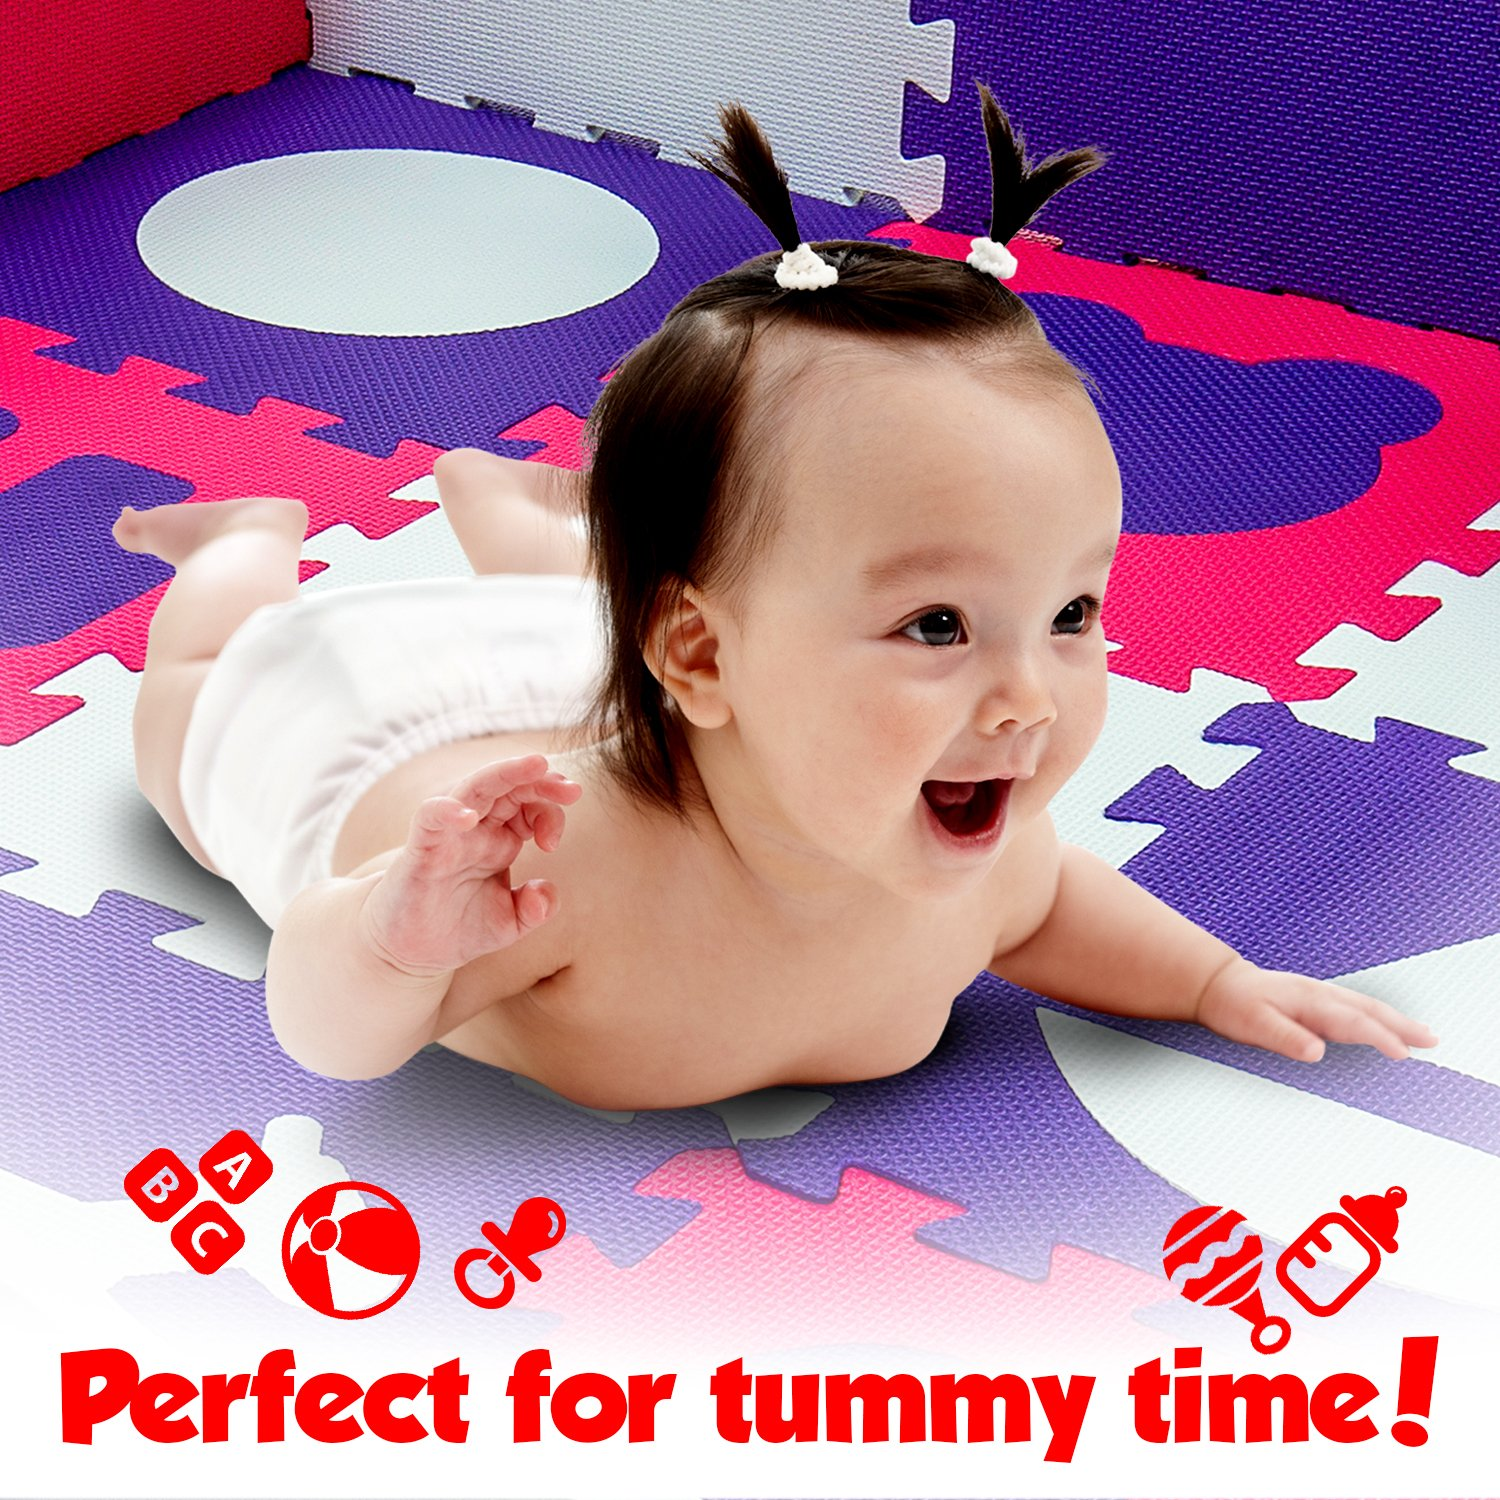 Wee Giggles Non-Toxic Foam Baby Play Mat for Tummy Time Sitting and Crawling